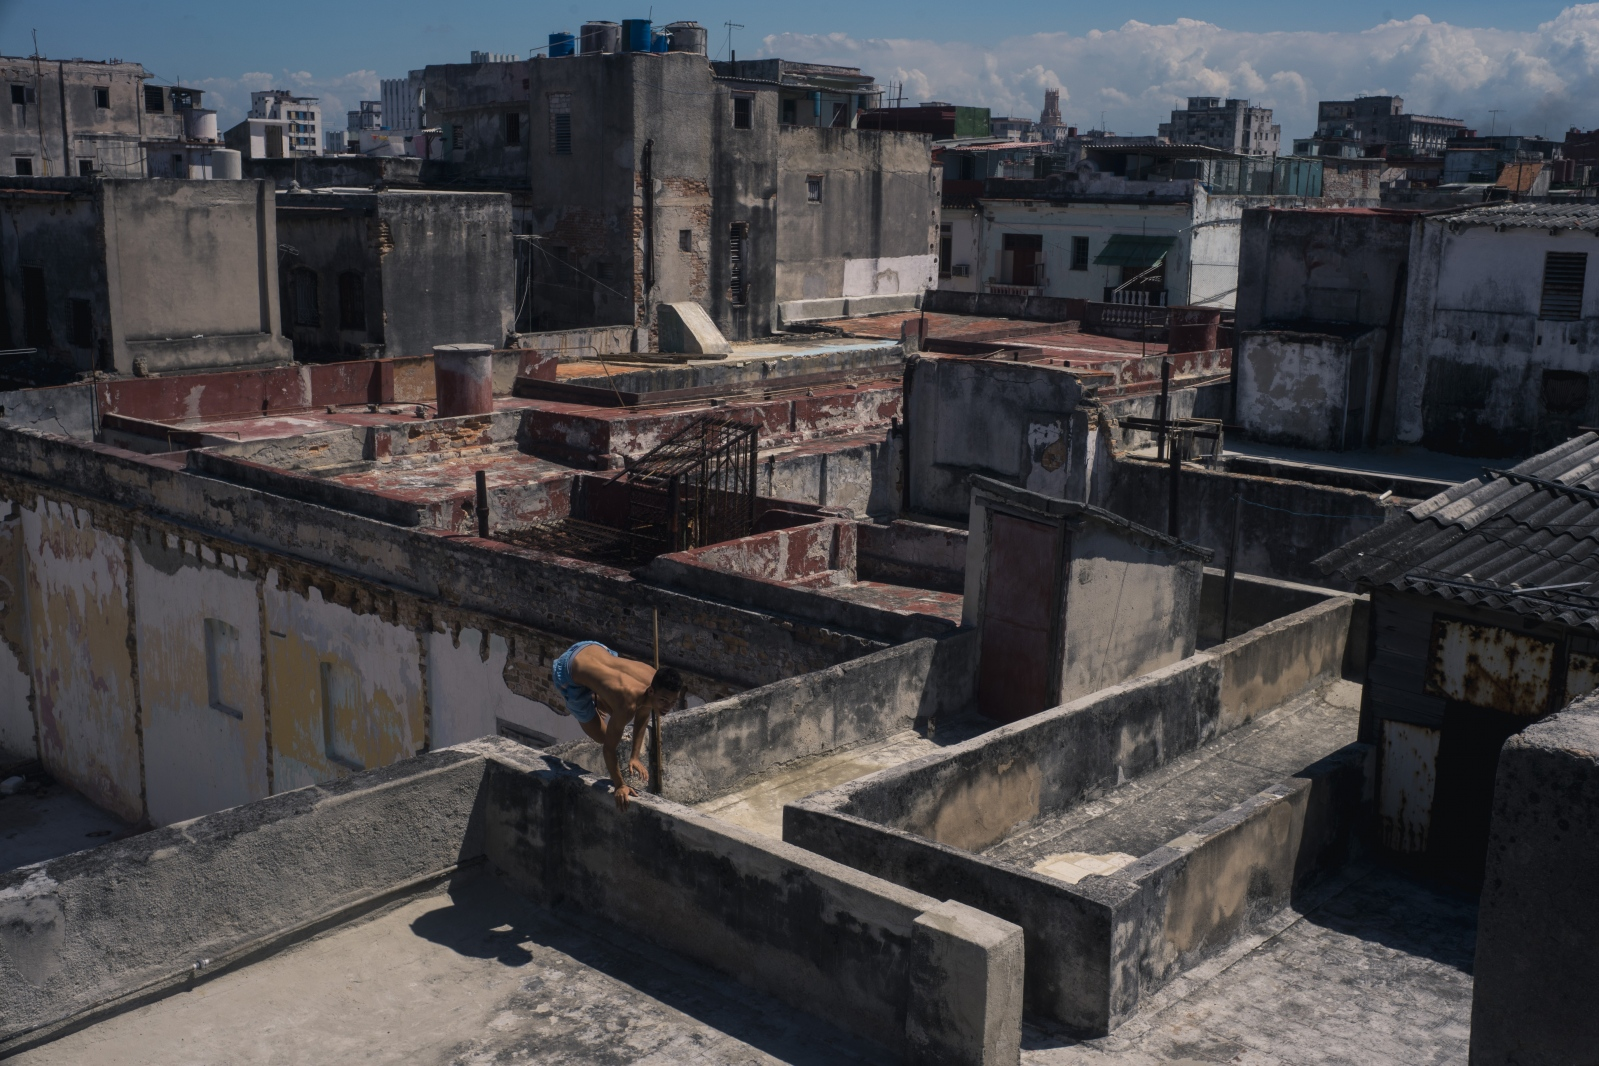 Ariam, a seventeen-year-old Cuban, runs across the roofs of his building complex. He lives in Central Havana, Cuba.